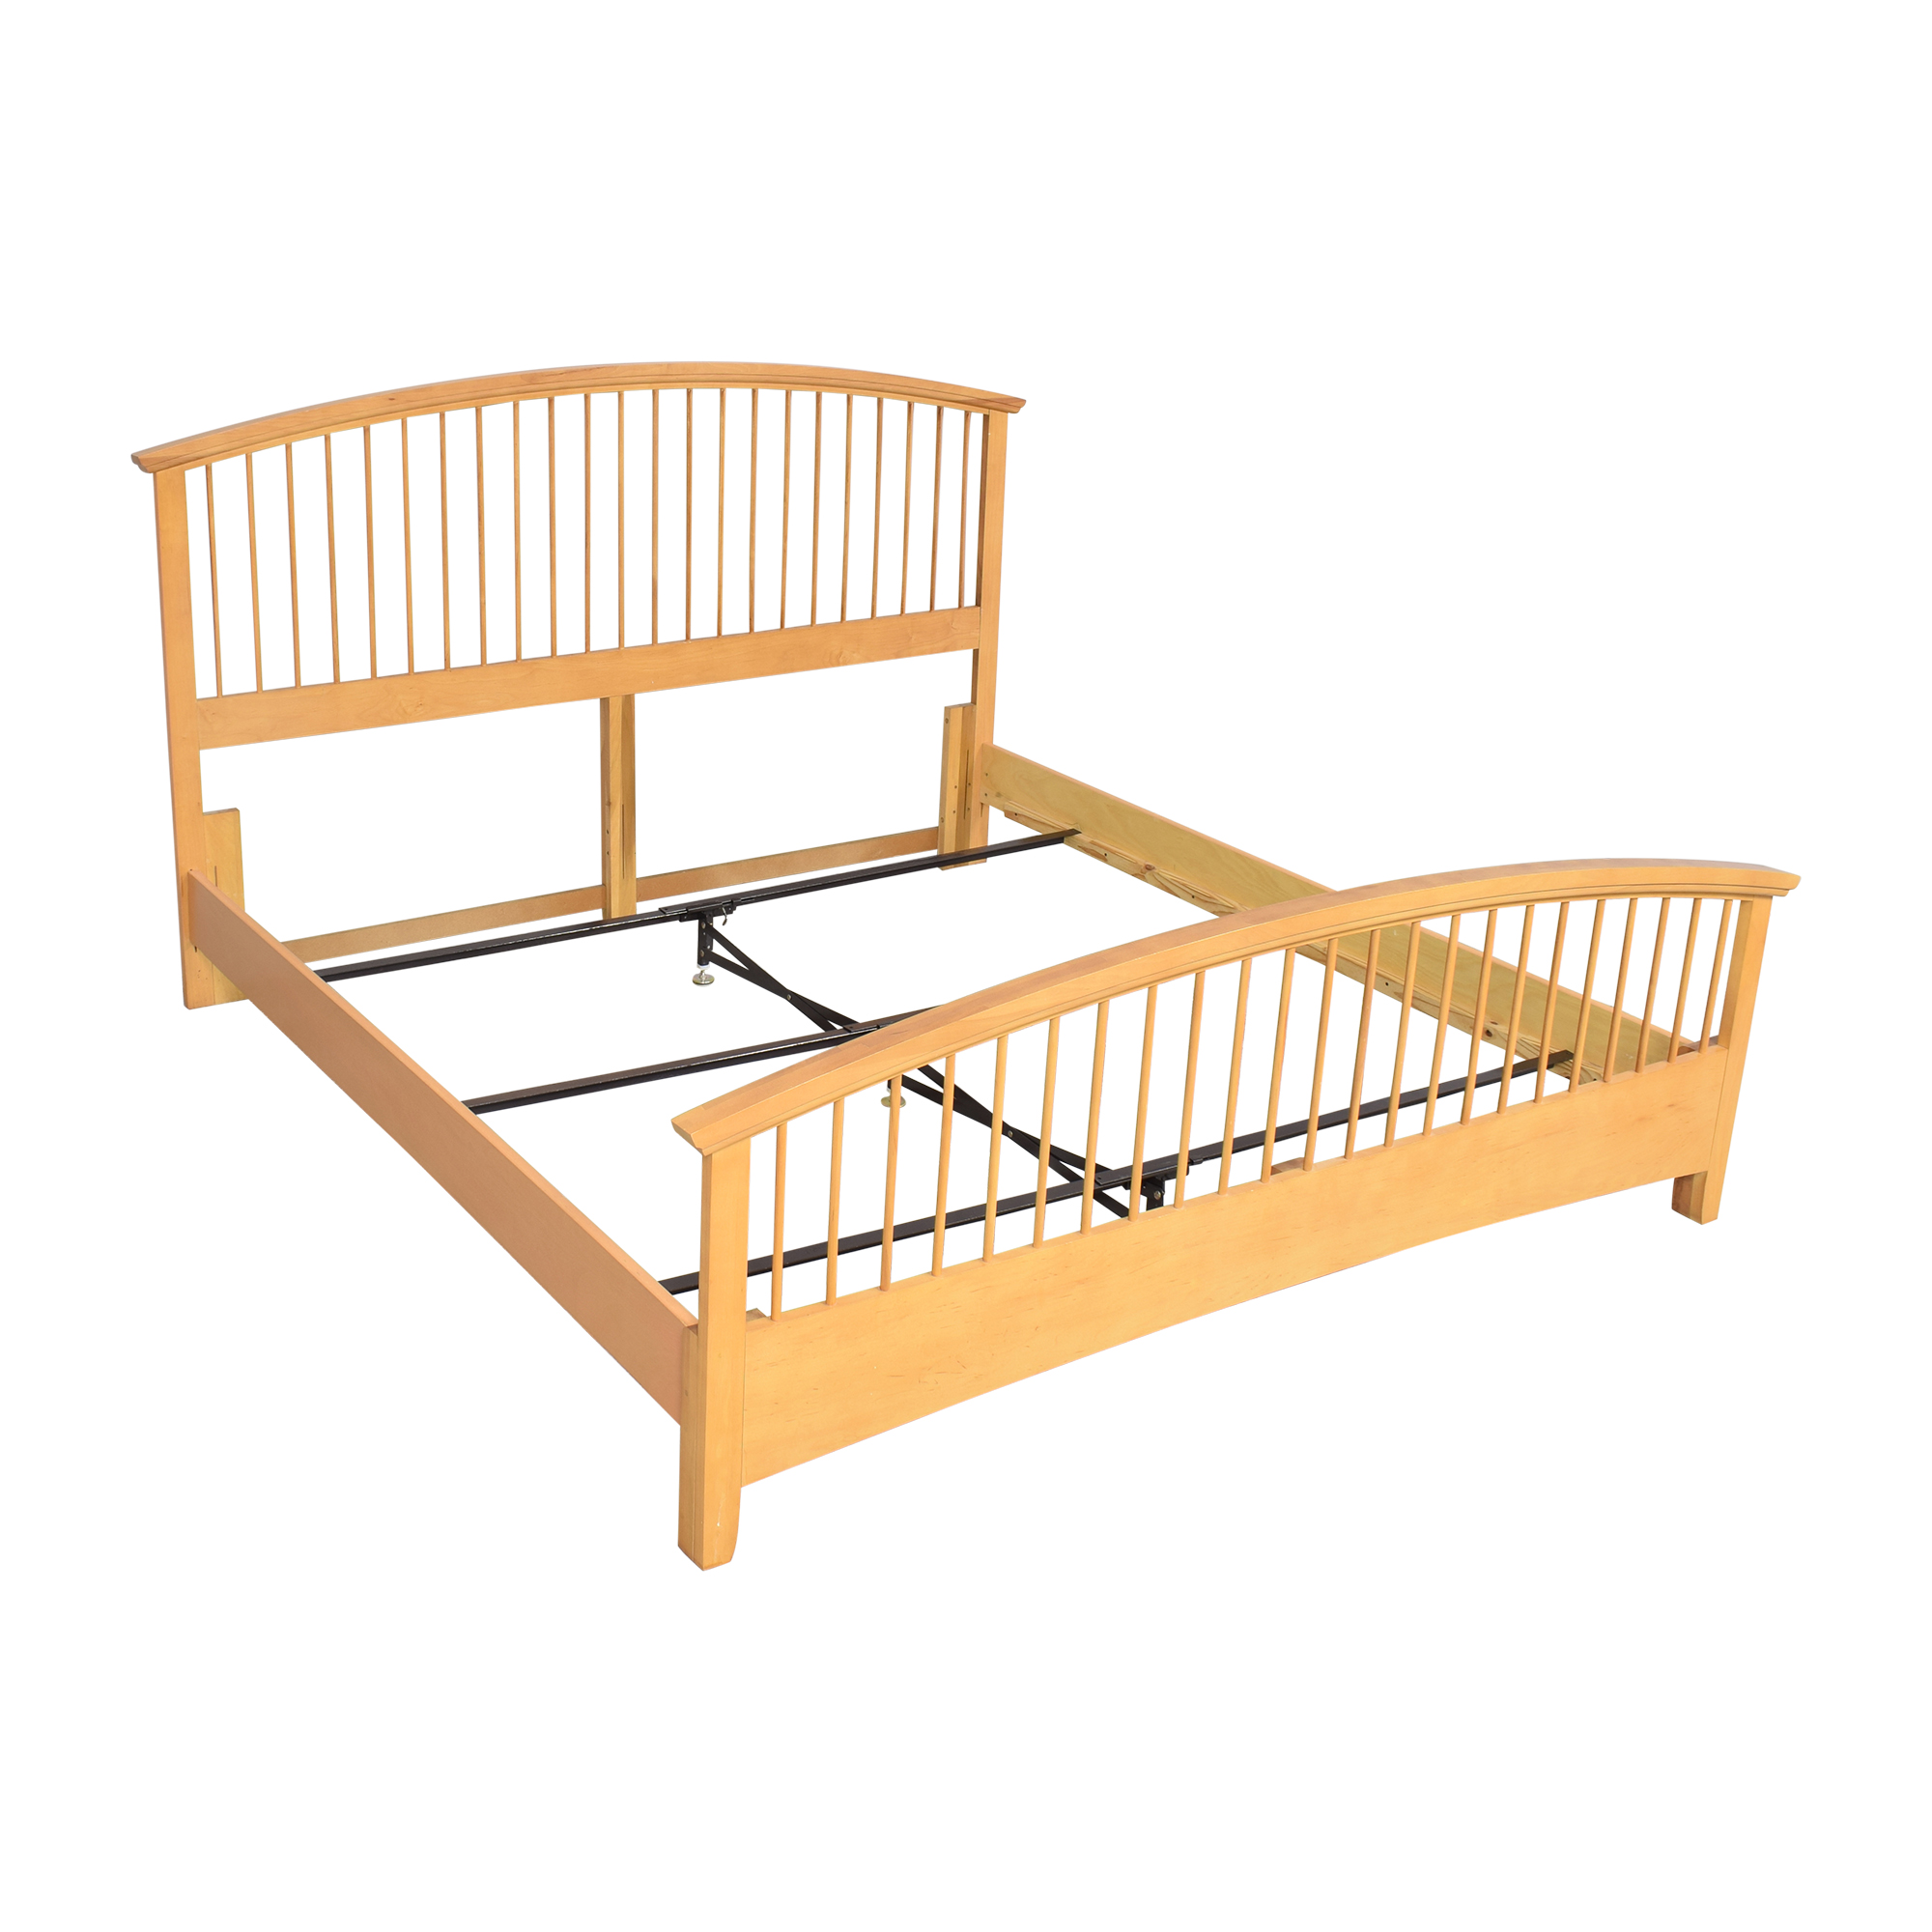 shop Vaughan-Bassett Arched Spindle King Bed Vaughan-Bassett